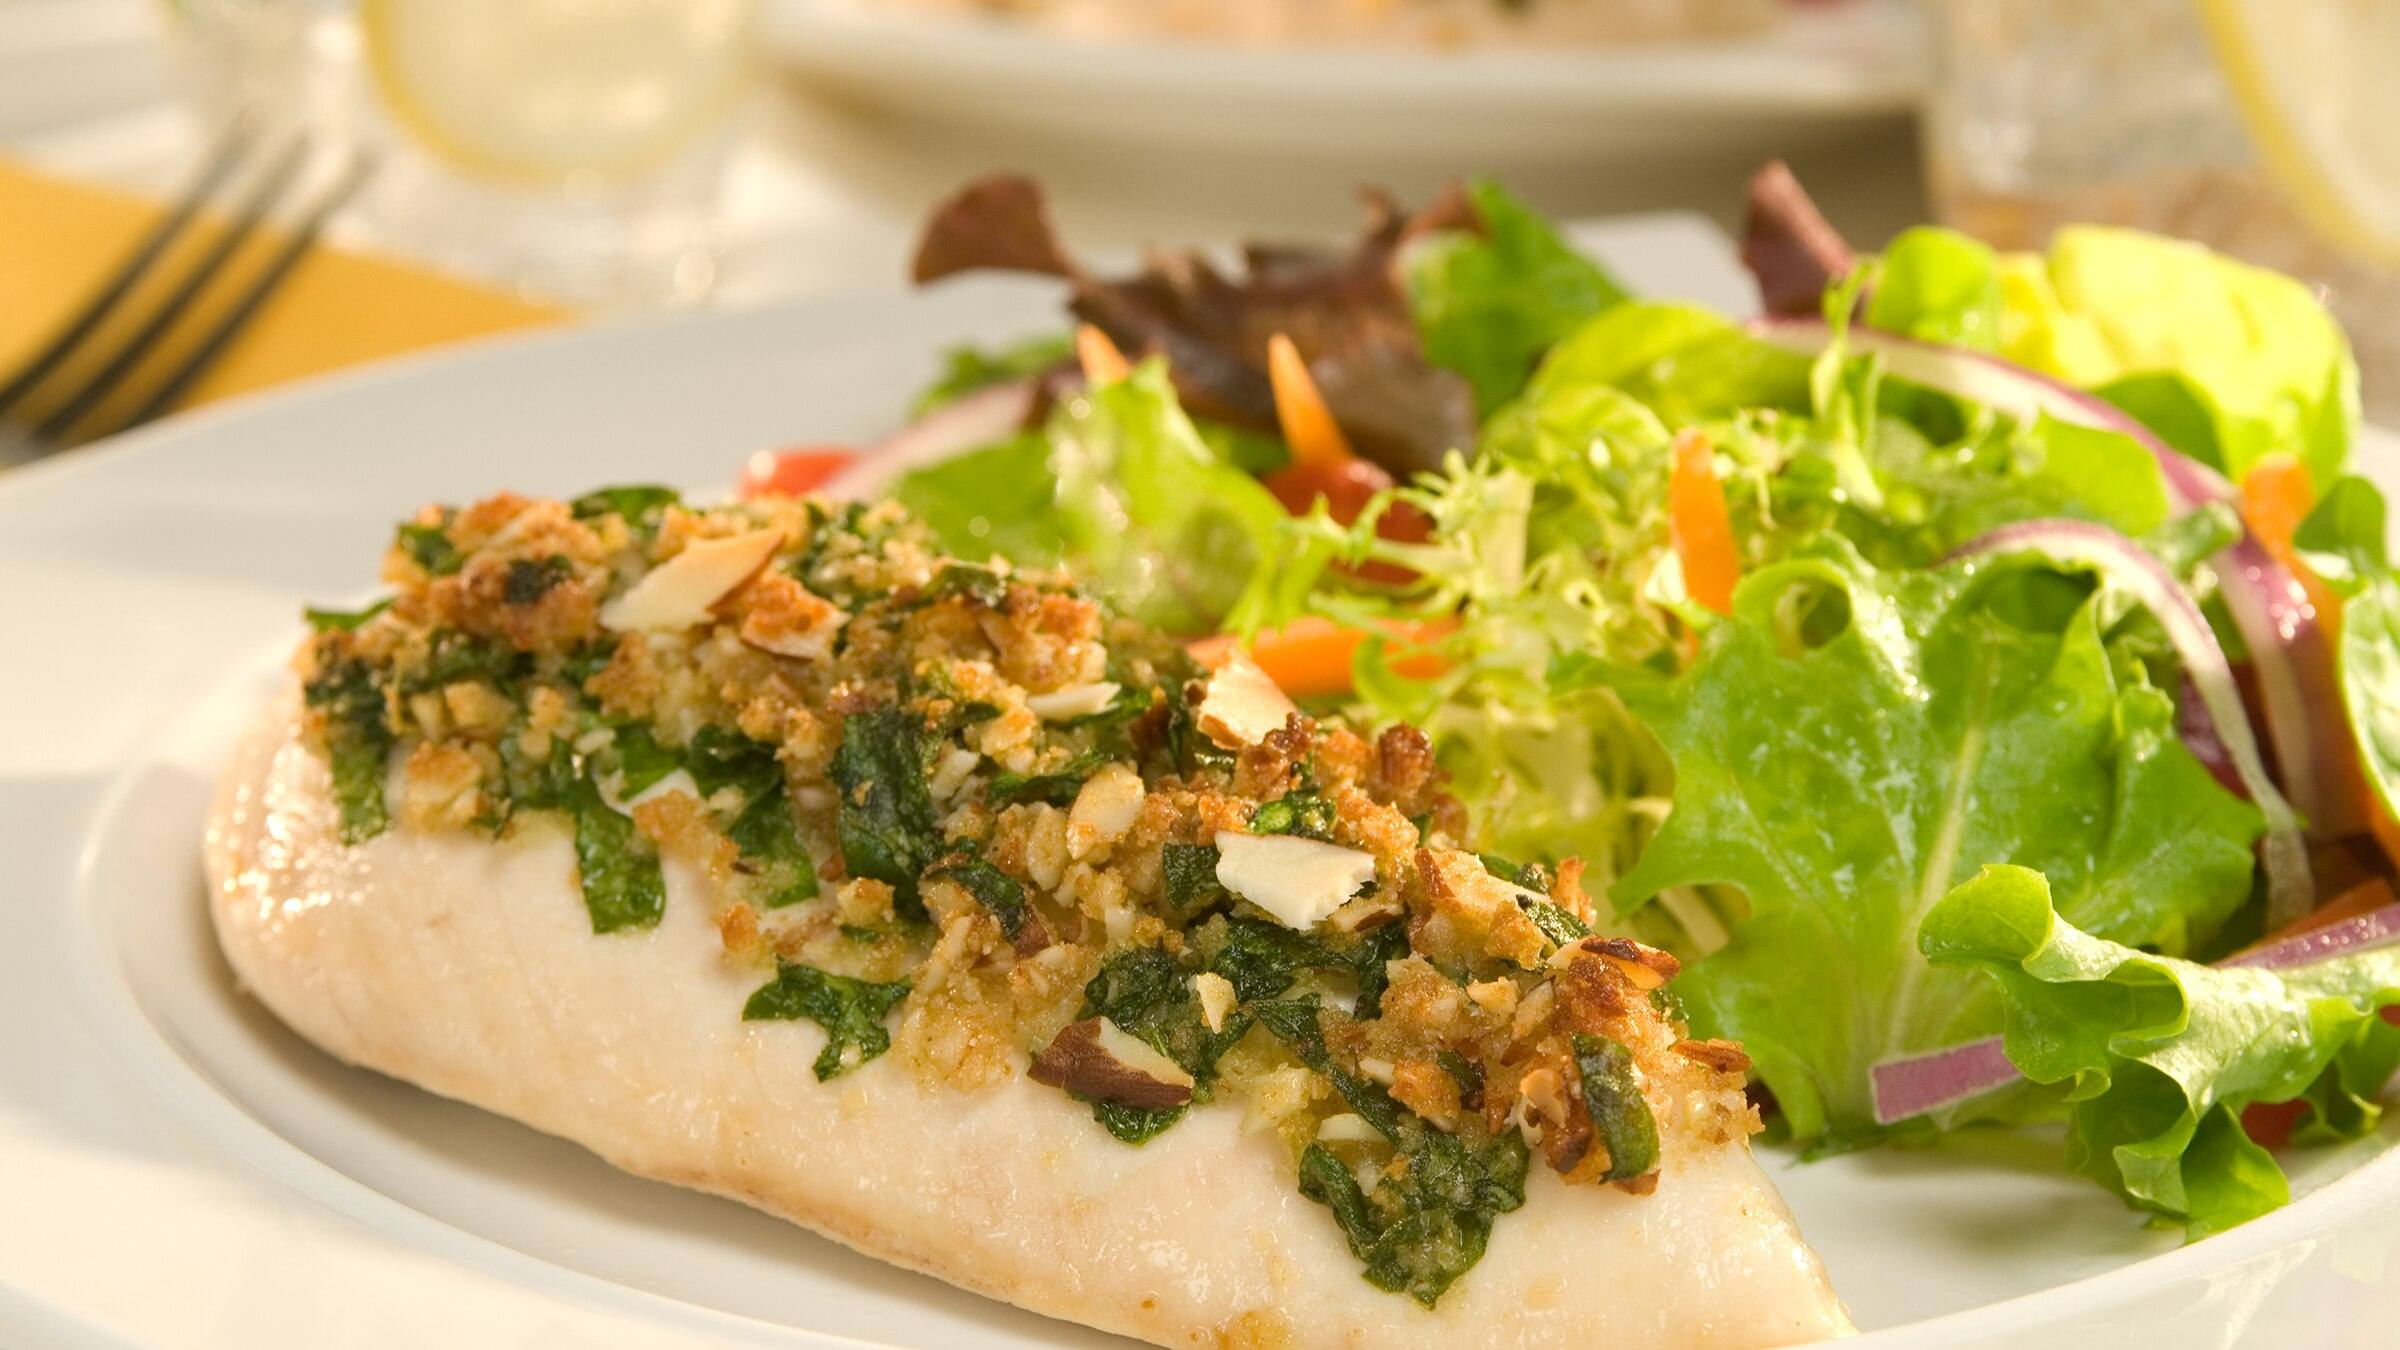 Spinach & Almond-Crusted Chicken